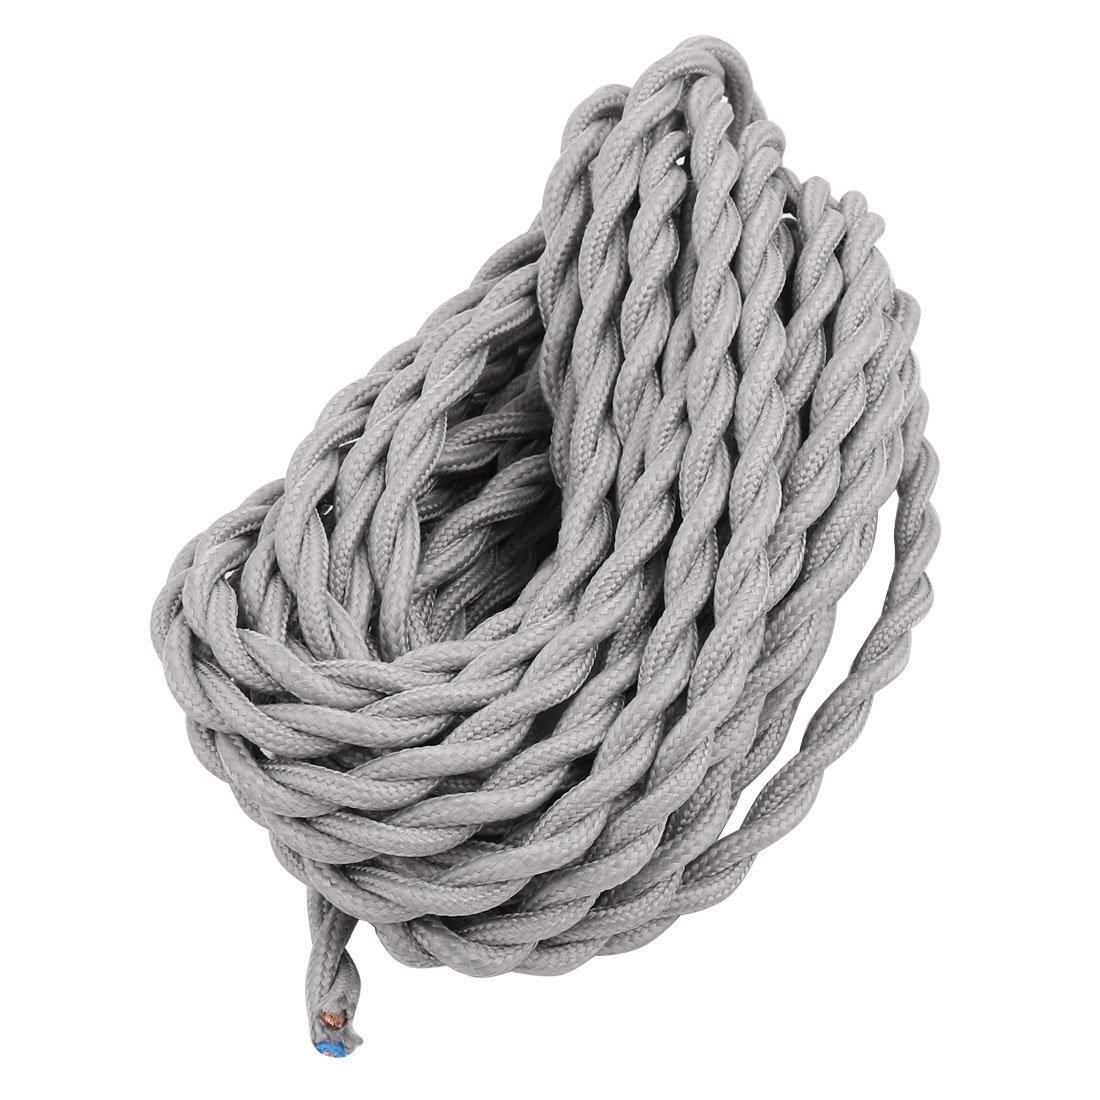 uxcell 5Meters 2-wire Gray Cloth Covered Round Cord Vintage Lamps Pendant Light VDE Certificated